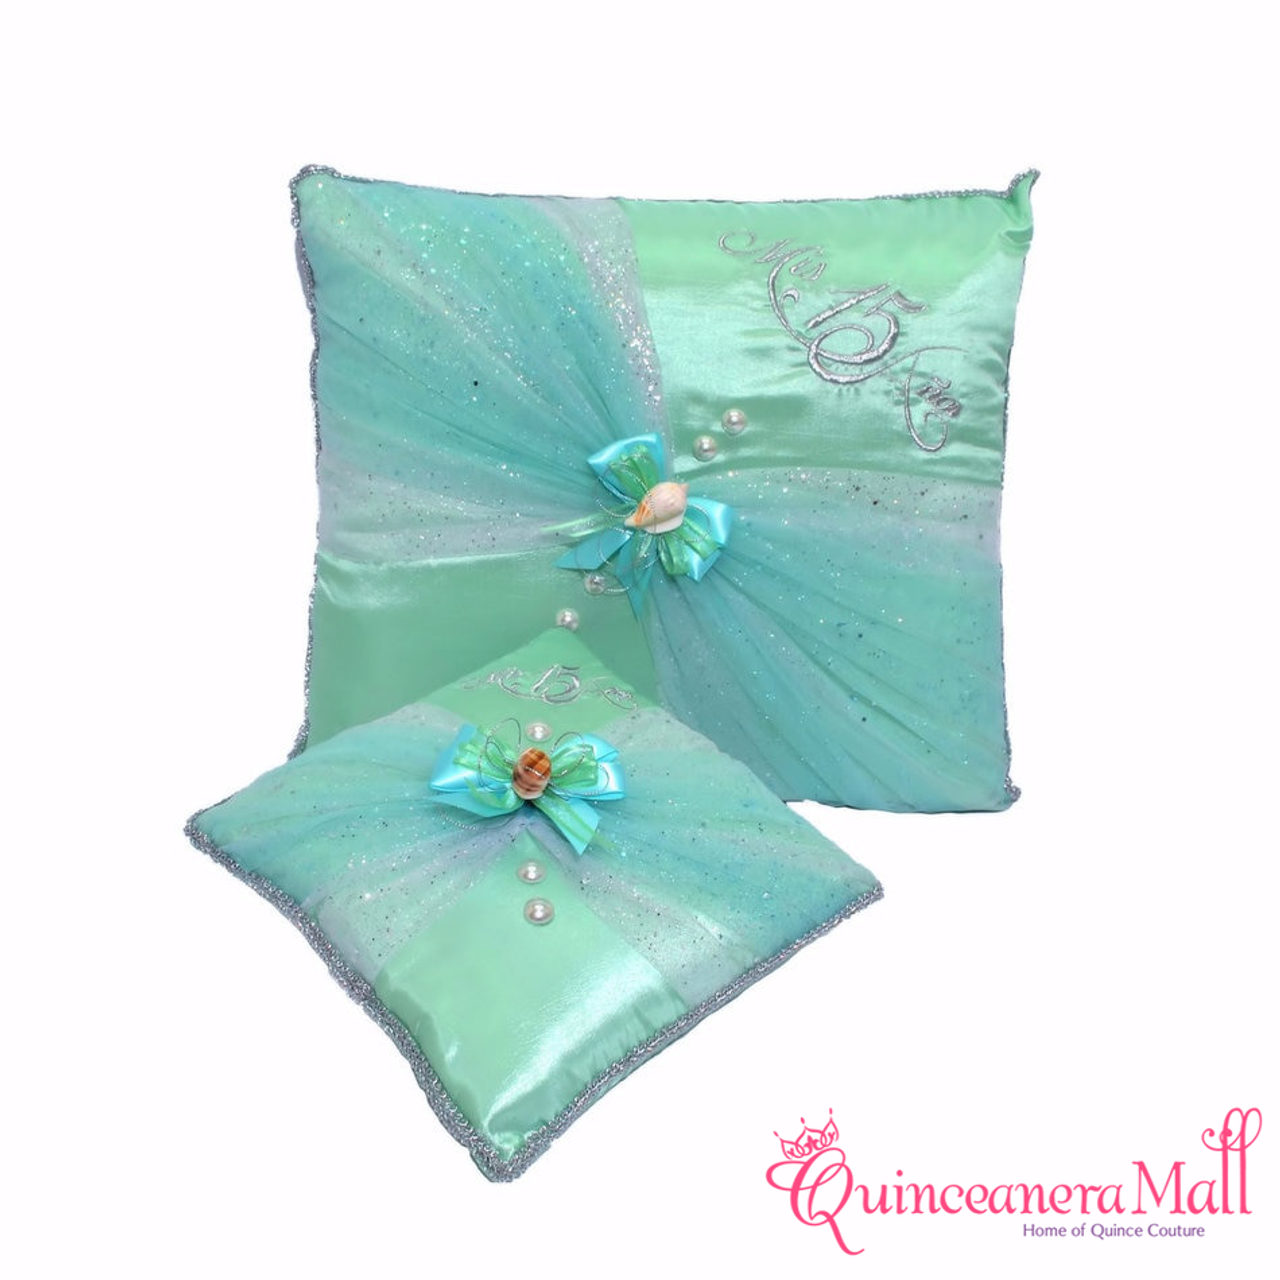 65e8cf725c0 Under The Sea Quinceanera Pillows - Two Pillows  PLW97 - Quinceanera ...